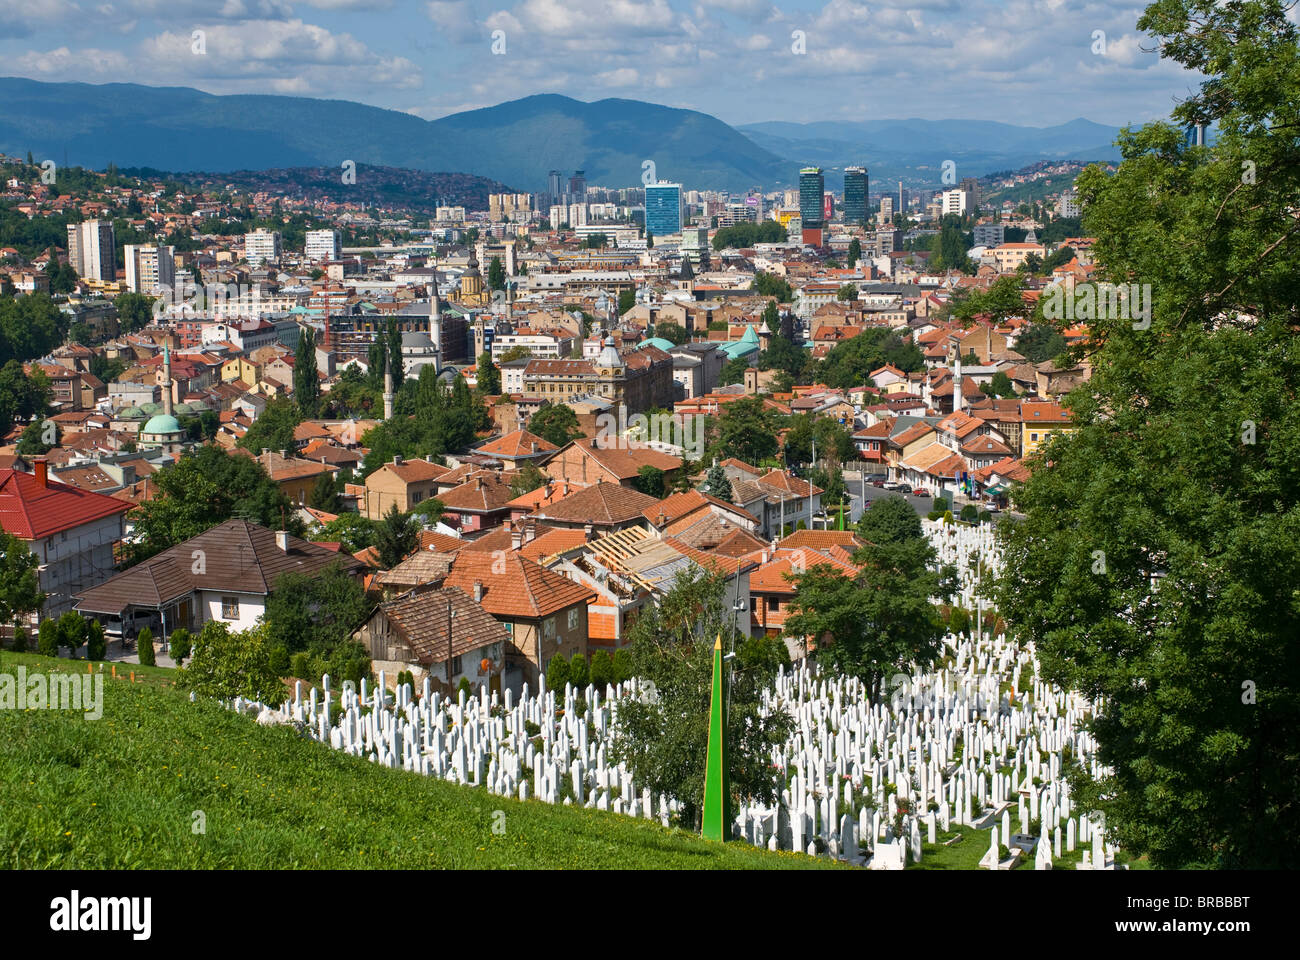 View over the city of Sarajevo, Bosnia-Herzegovina - Stock Image